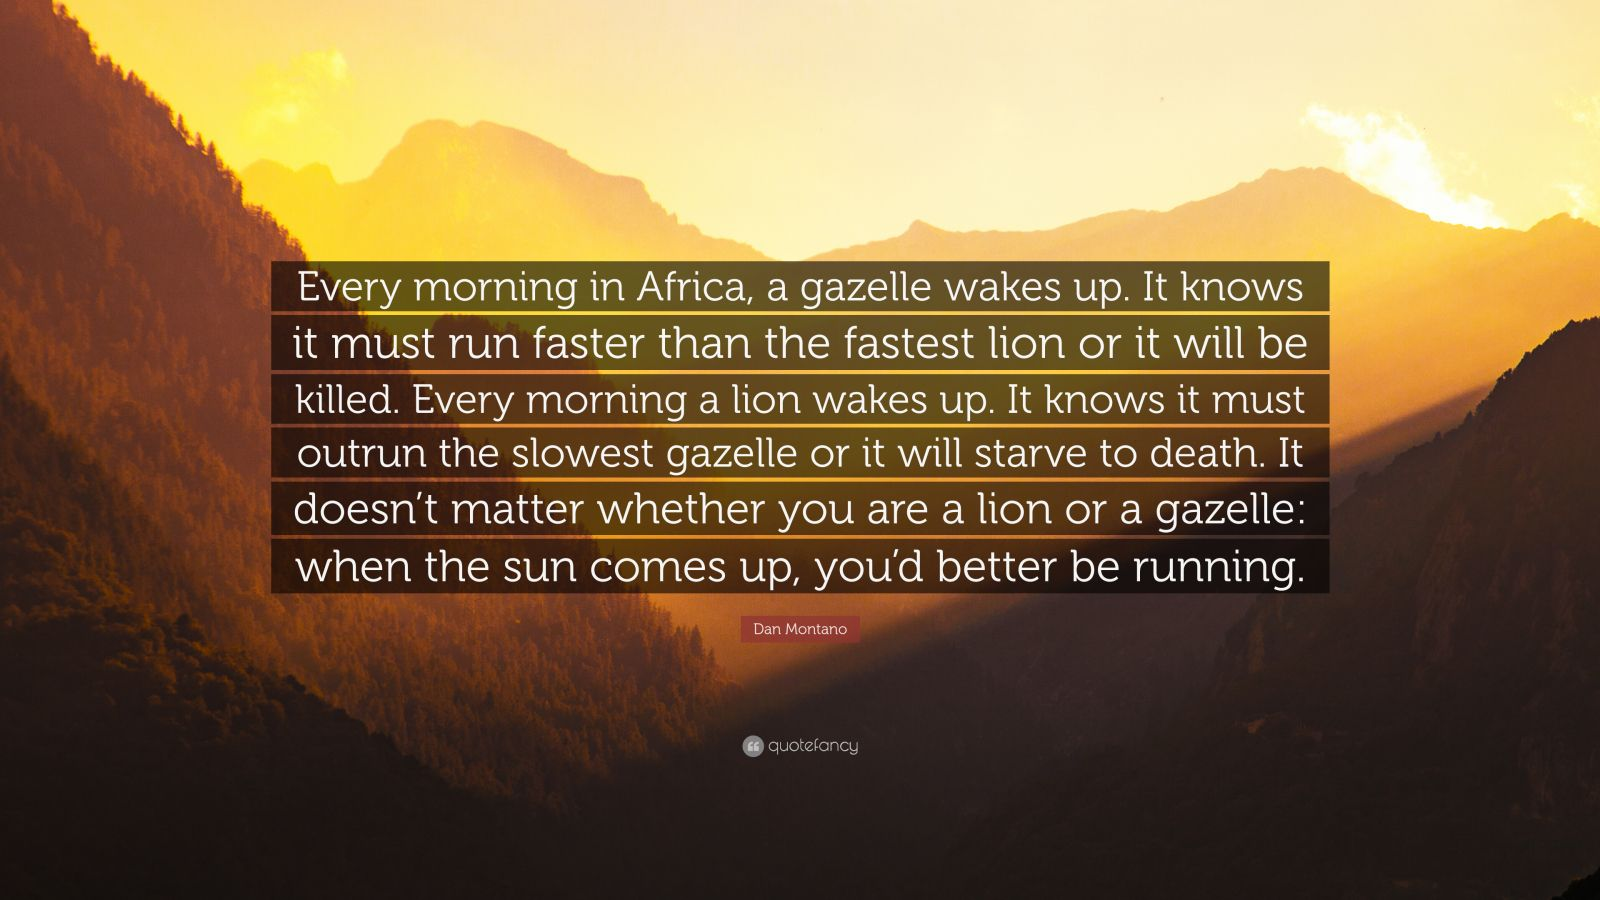 Conor Mcgregor Quote Wallpaper Dan Montano Quote Every Morning In Africa A Gazelle